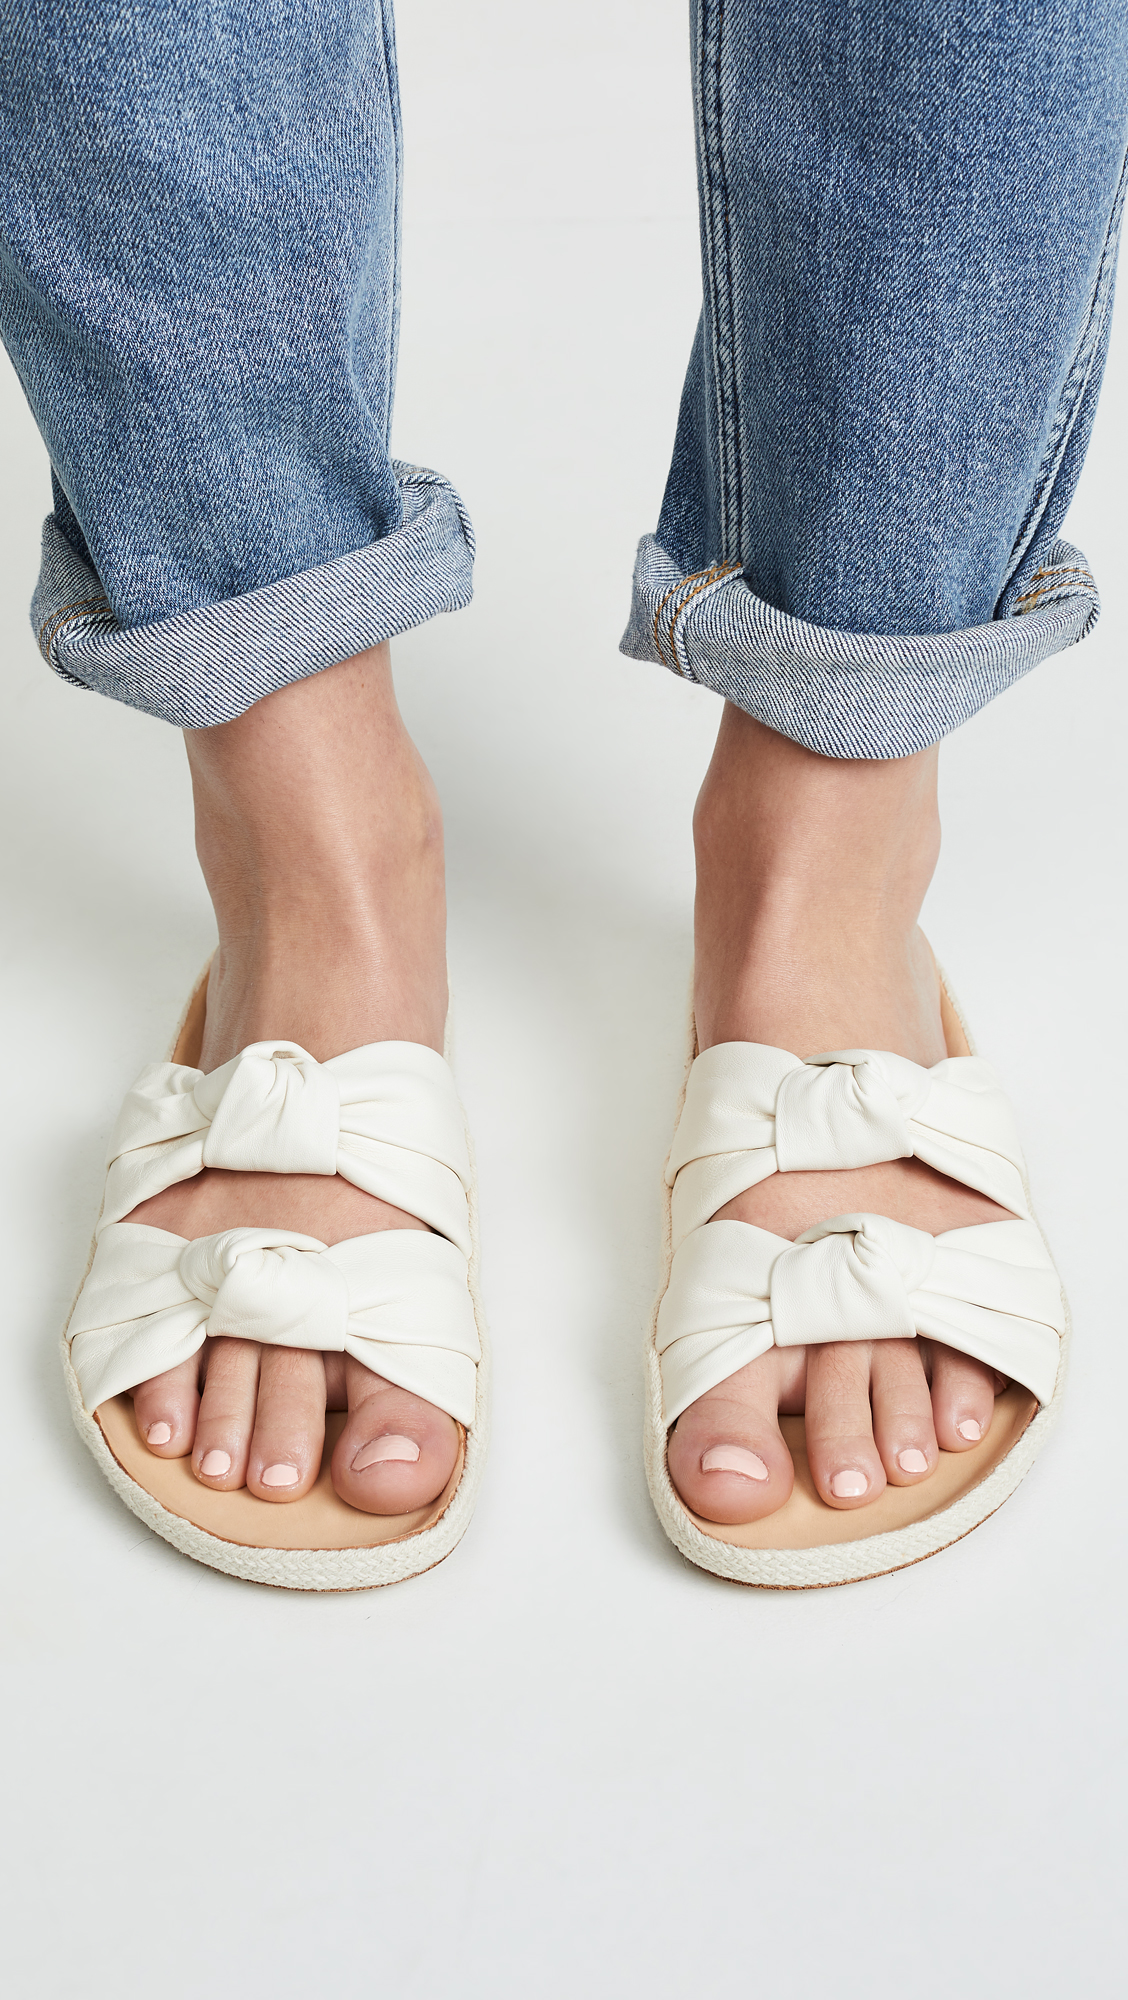 Soludos Knotted Summer Slide Sandals, not Perfectly Feminine Sneakers but still beautiful!